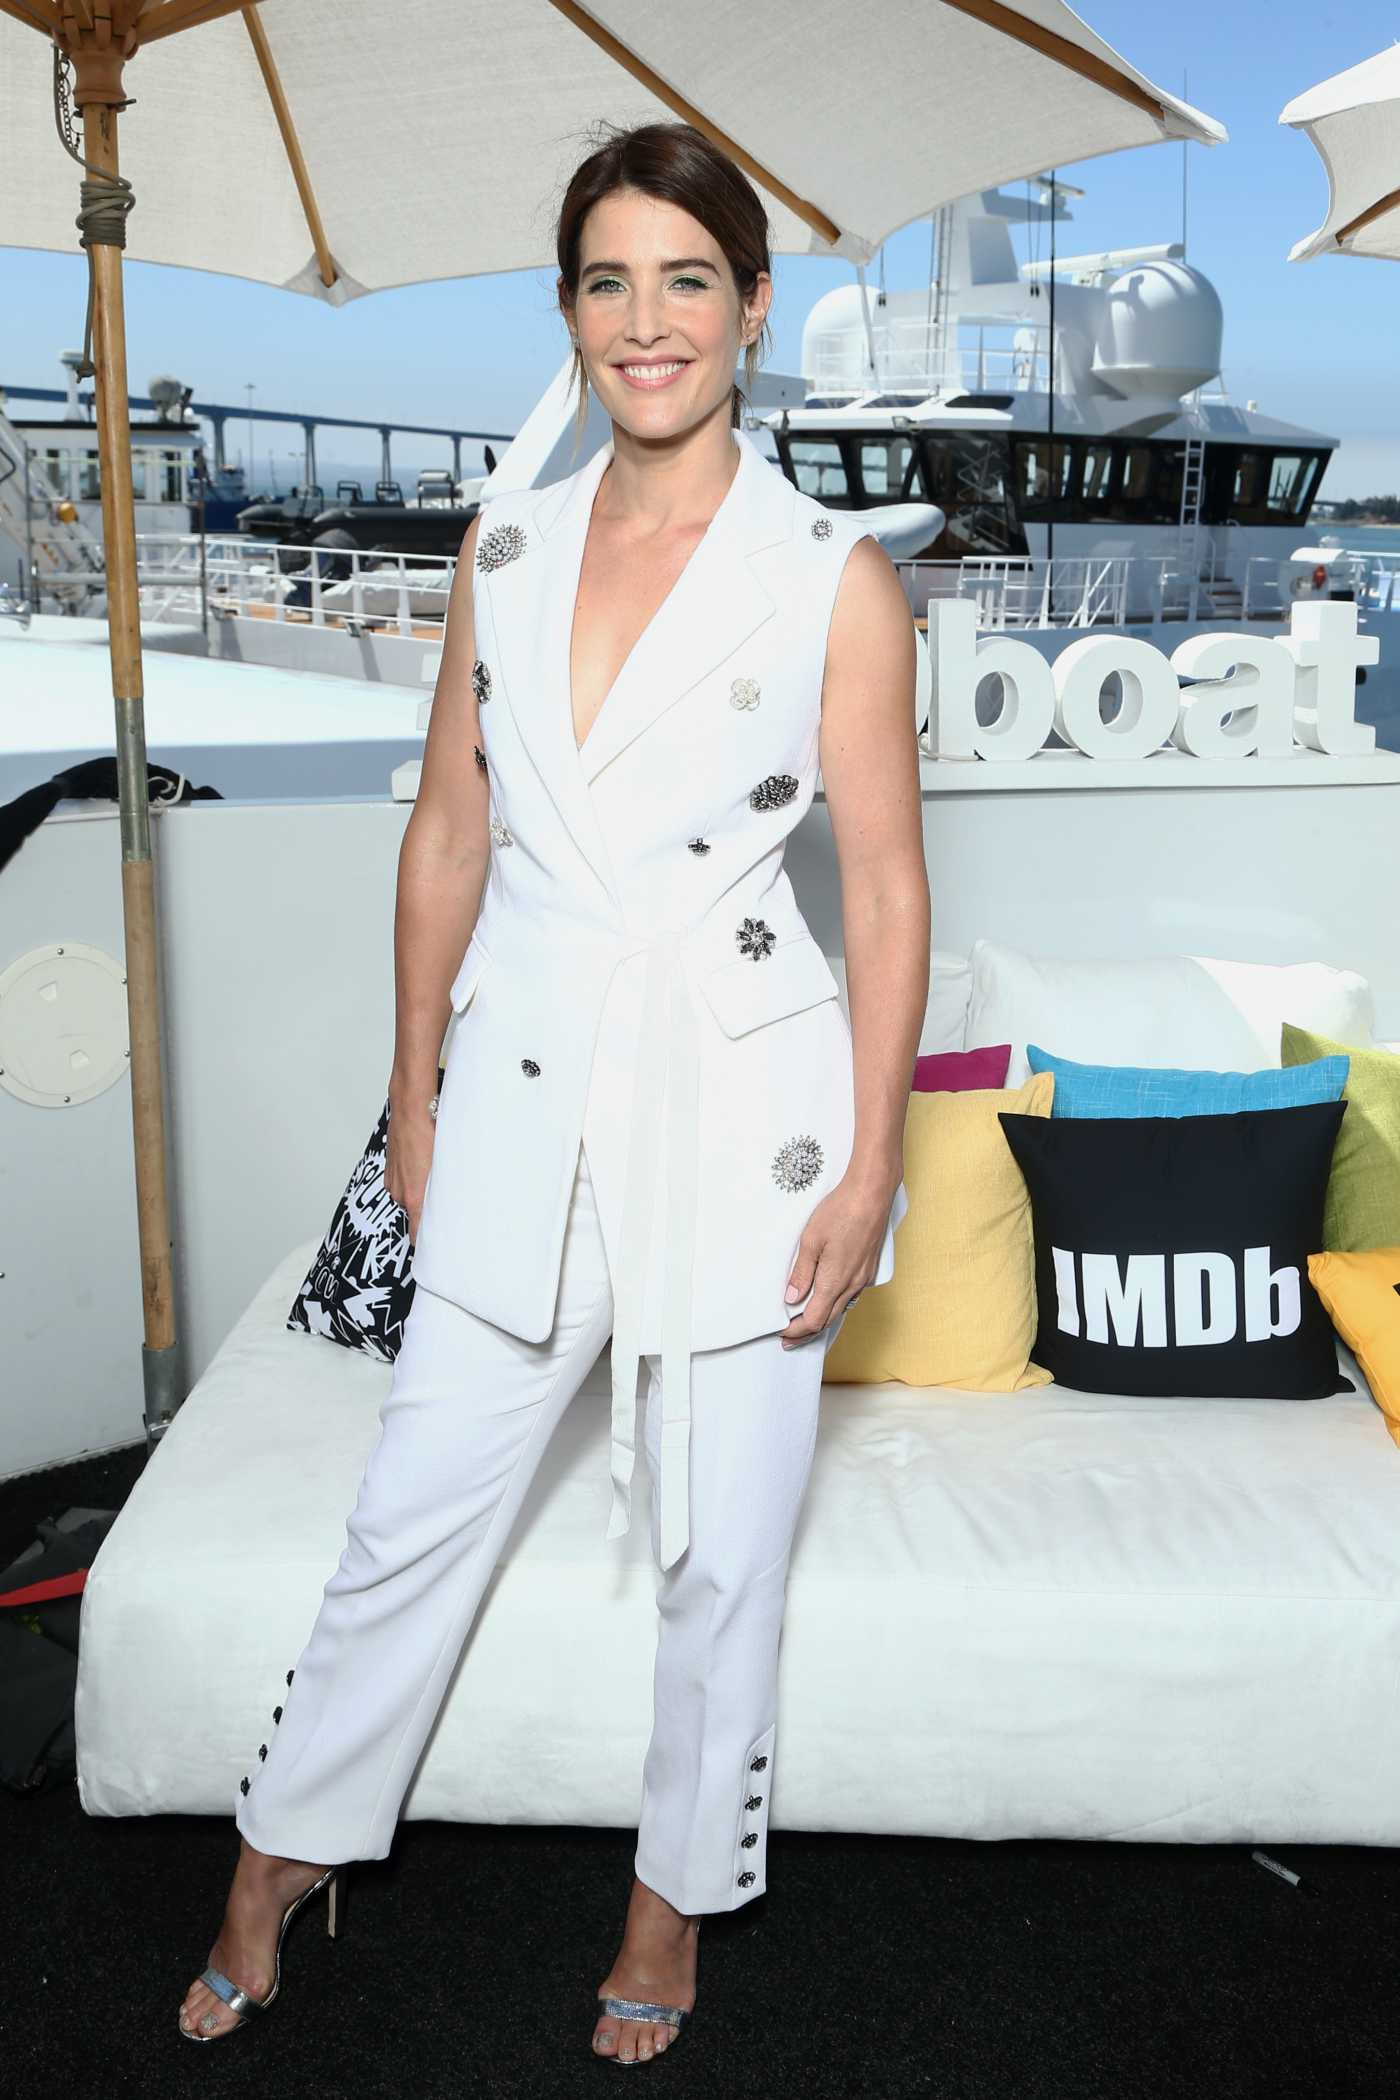 Cobie Smulders Attends the IMDboat During 2019 Comic-Con at the IMDb Yacht in San Diego 07/19/2019